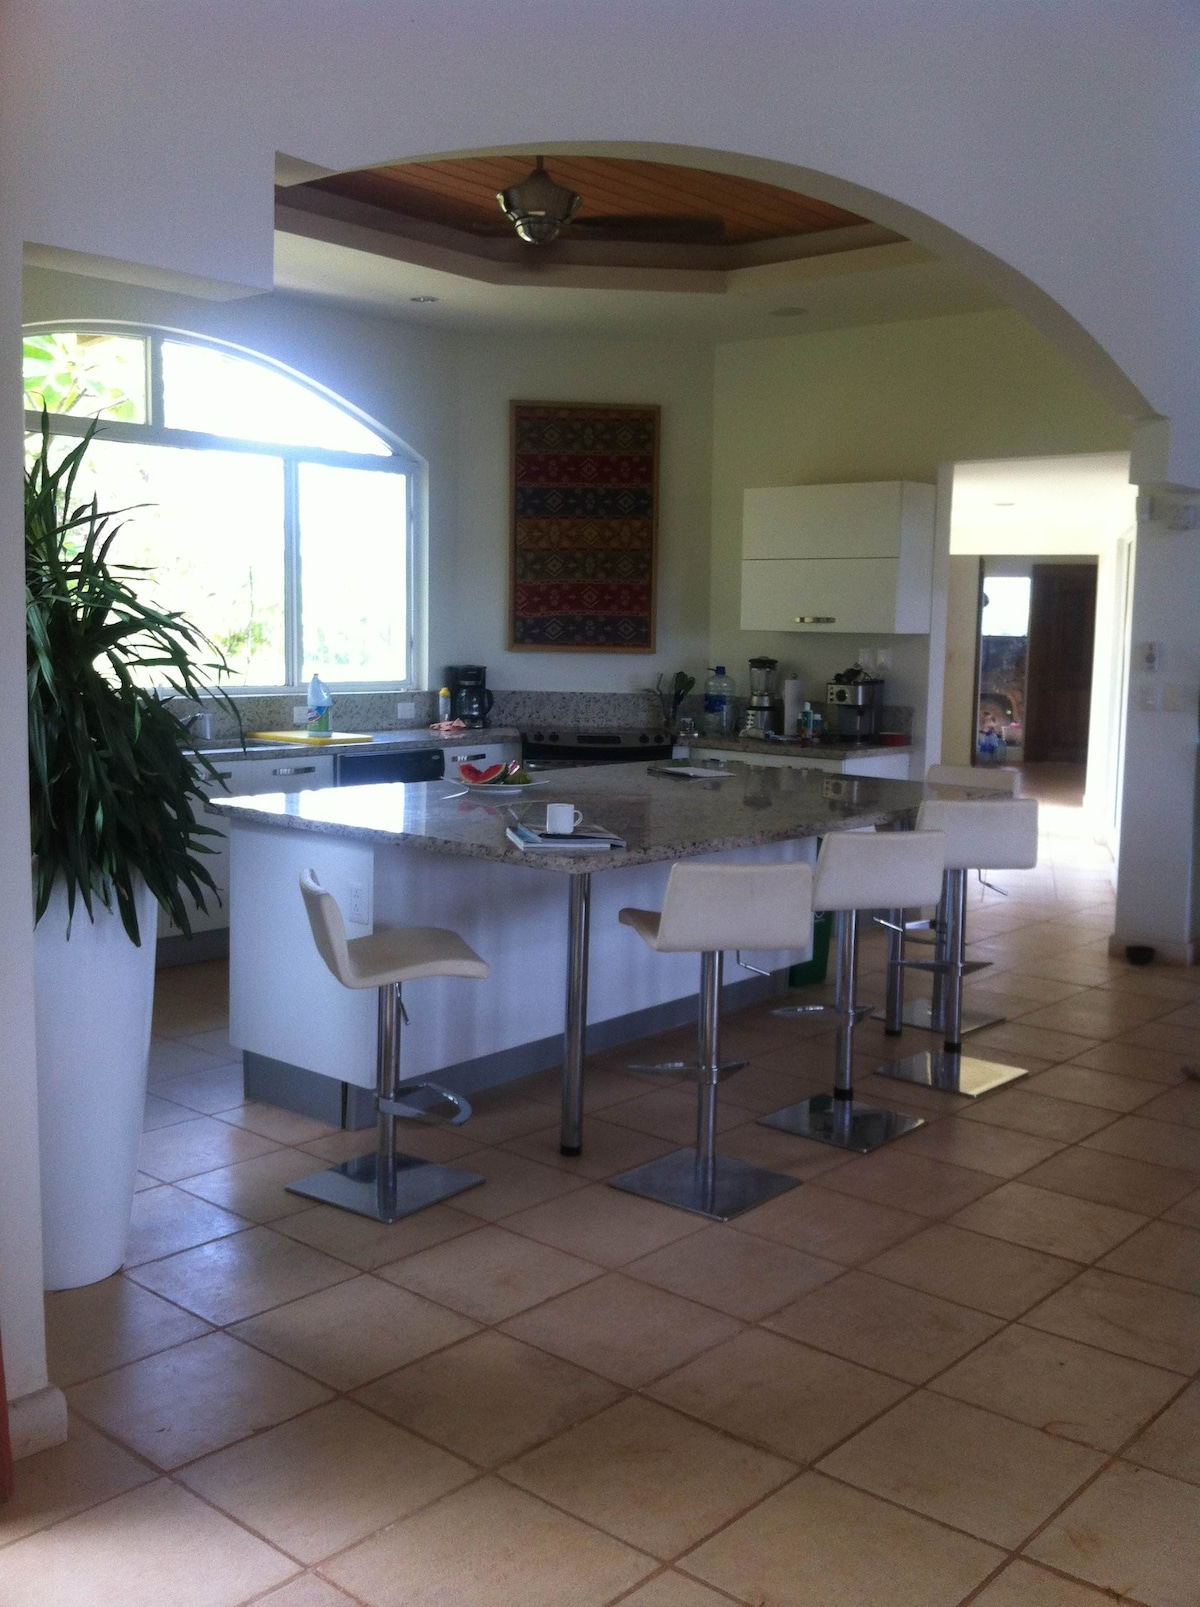 Open kitchen setup complete with espresso maker and Cuisinart appliances.